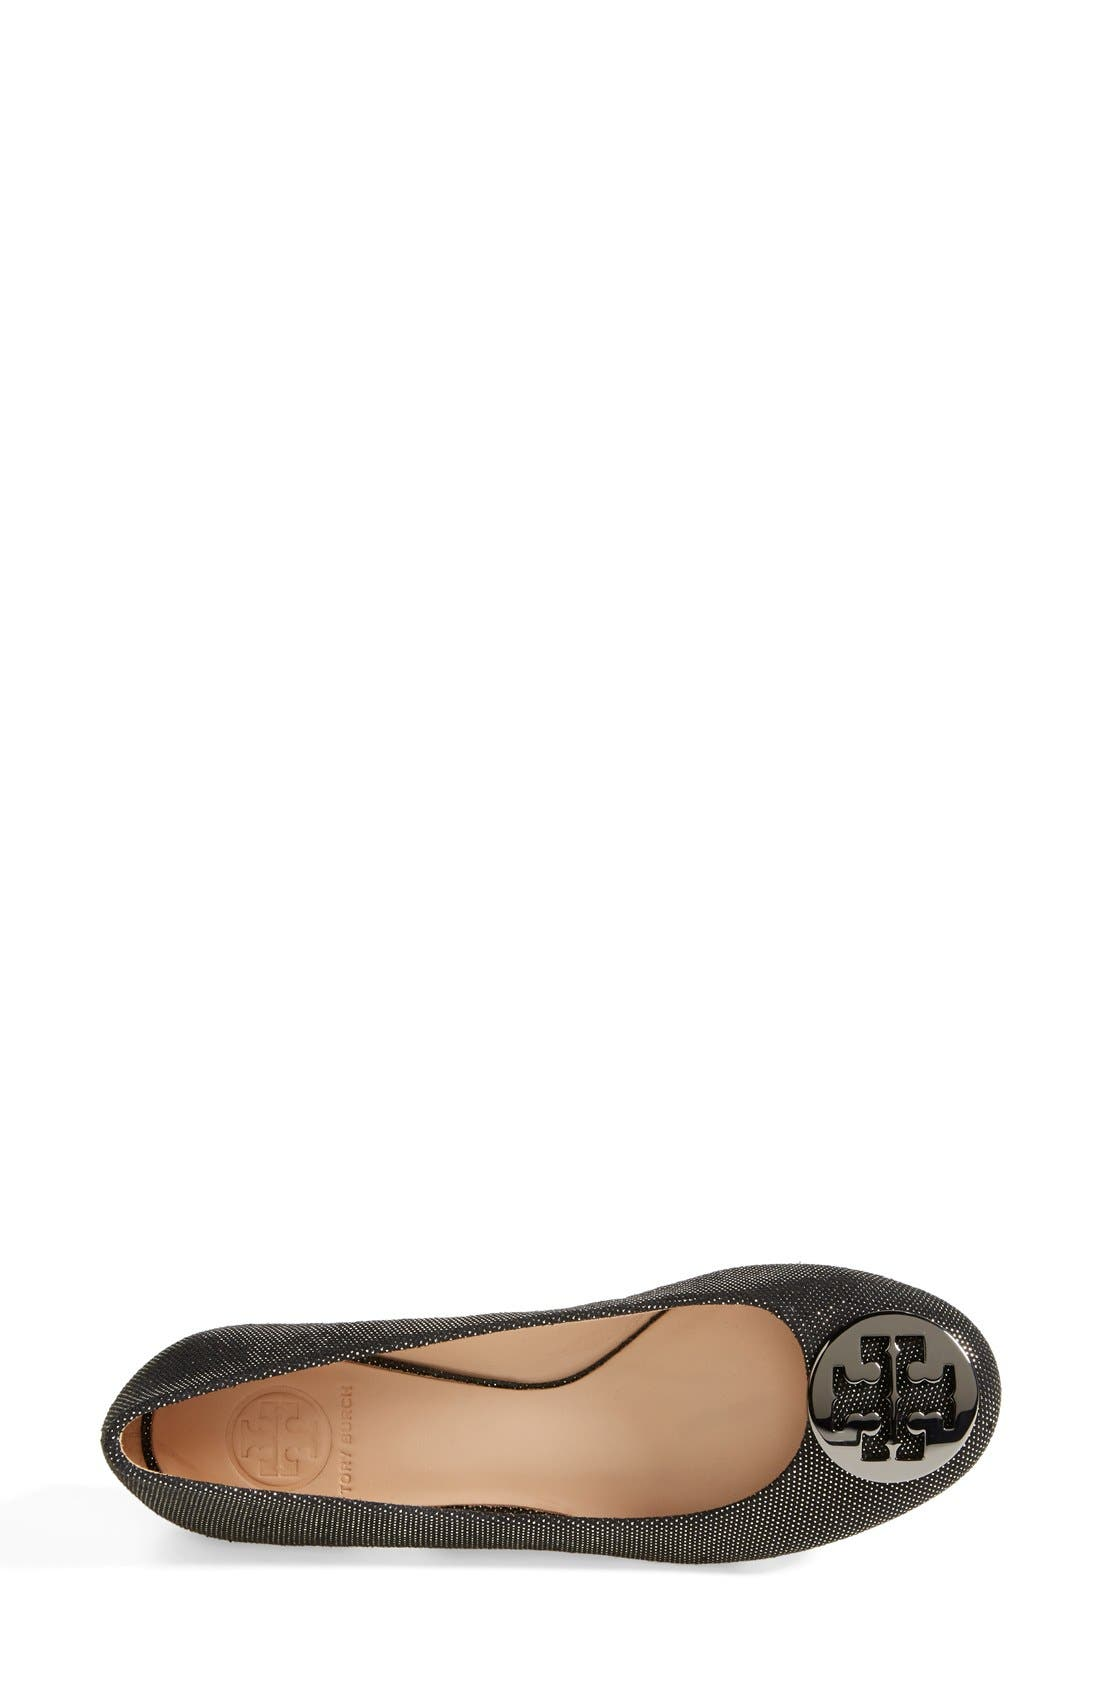 Alternate Image 3  - Tory Burch 'Reva' Metallic Dot Suede Ballet Flat (Women)